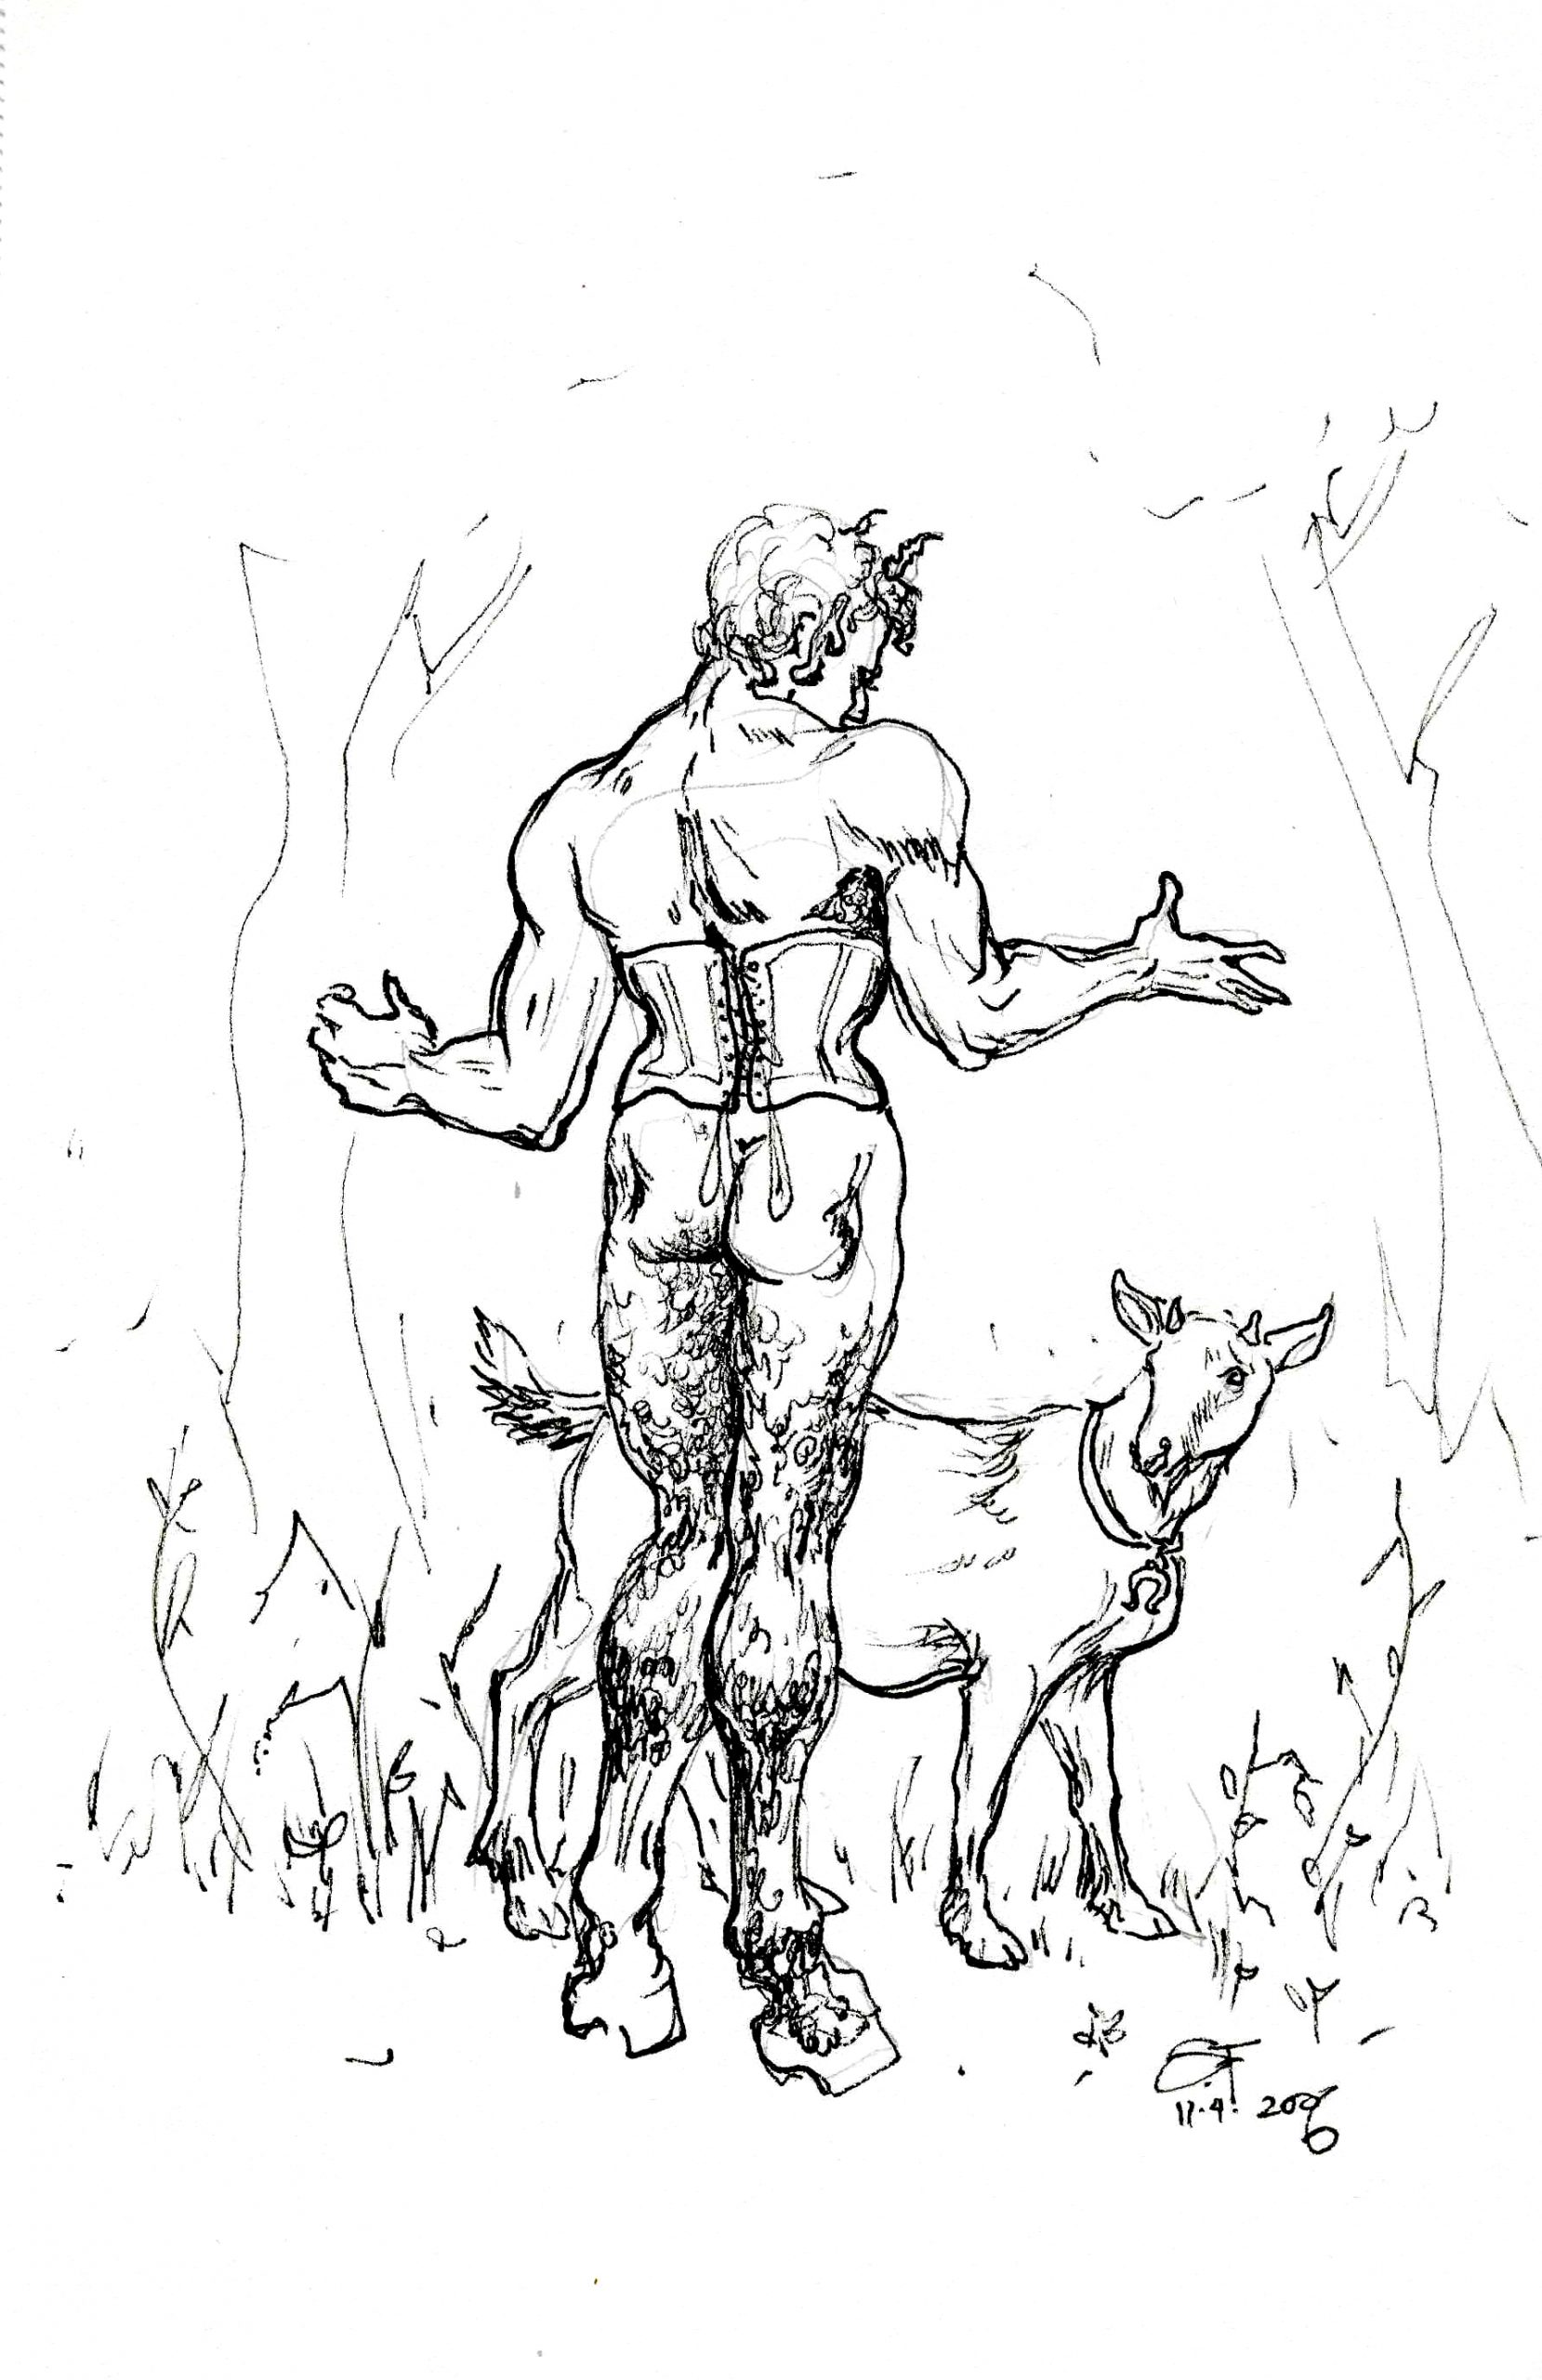 Naughty Faun with Goat 6x8 11 7 2006 by Suzanne Forbes